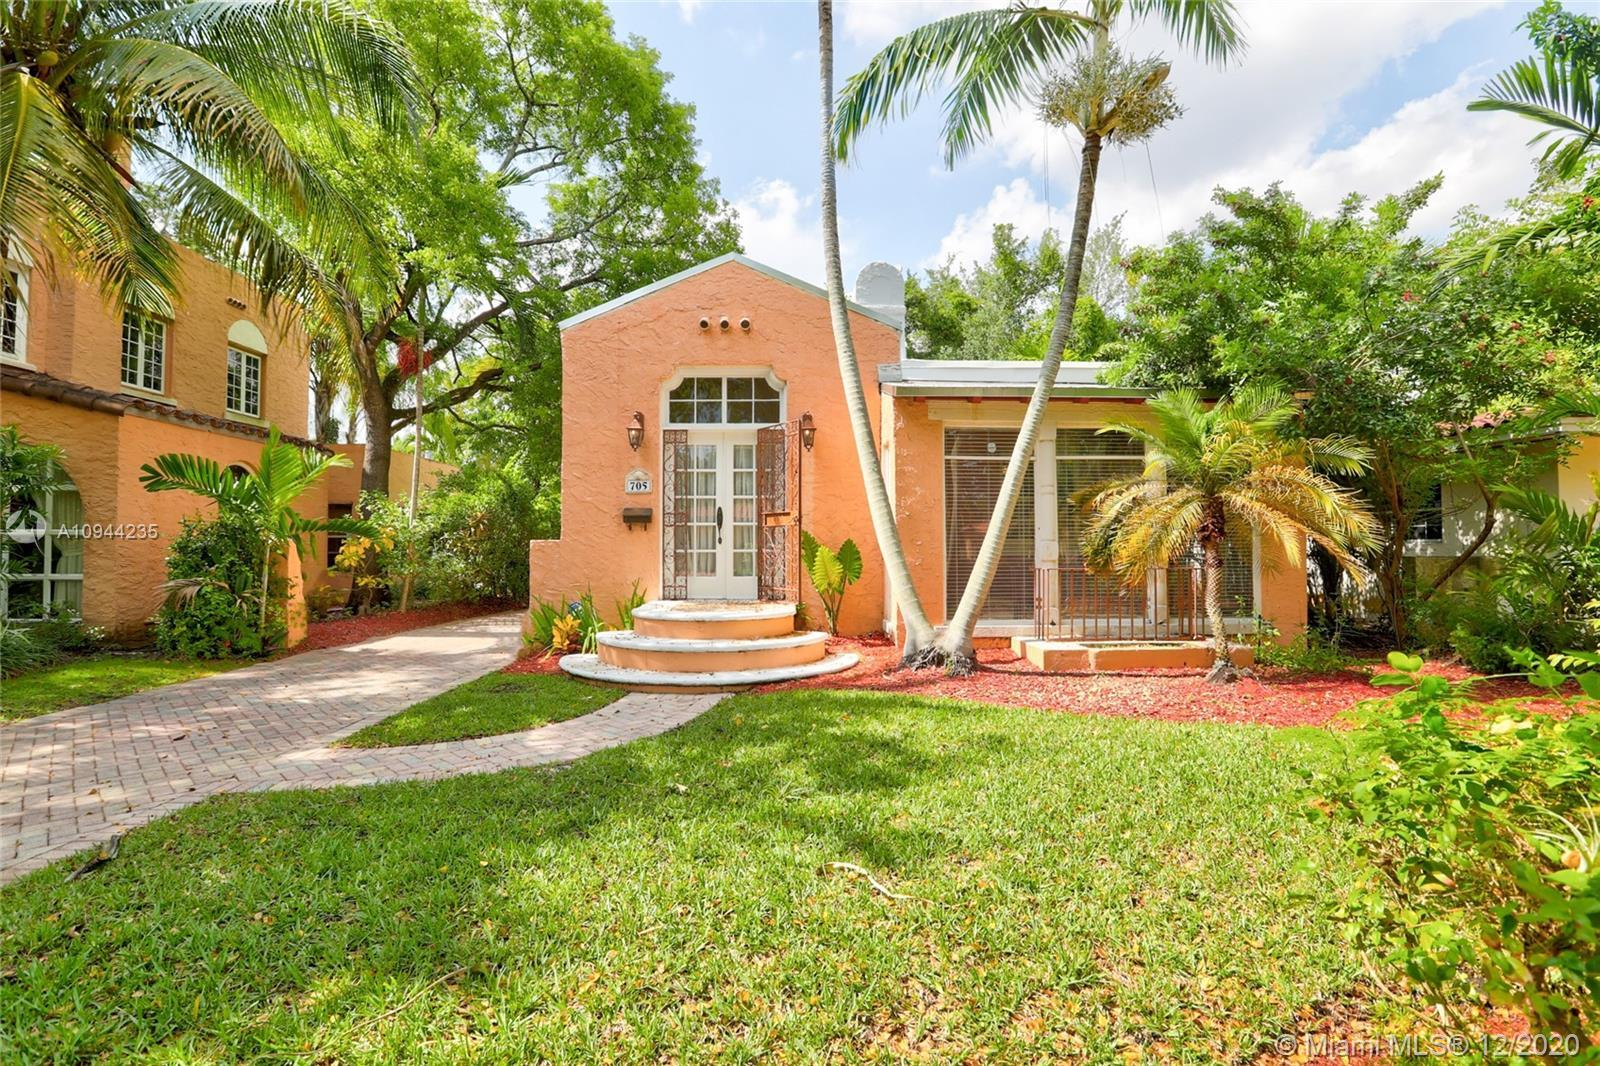 Charming Old Spanish home for sale on a beautiful and quiet street in North Gables! 2 bedrooms/1 bat